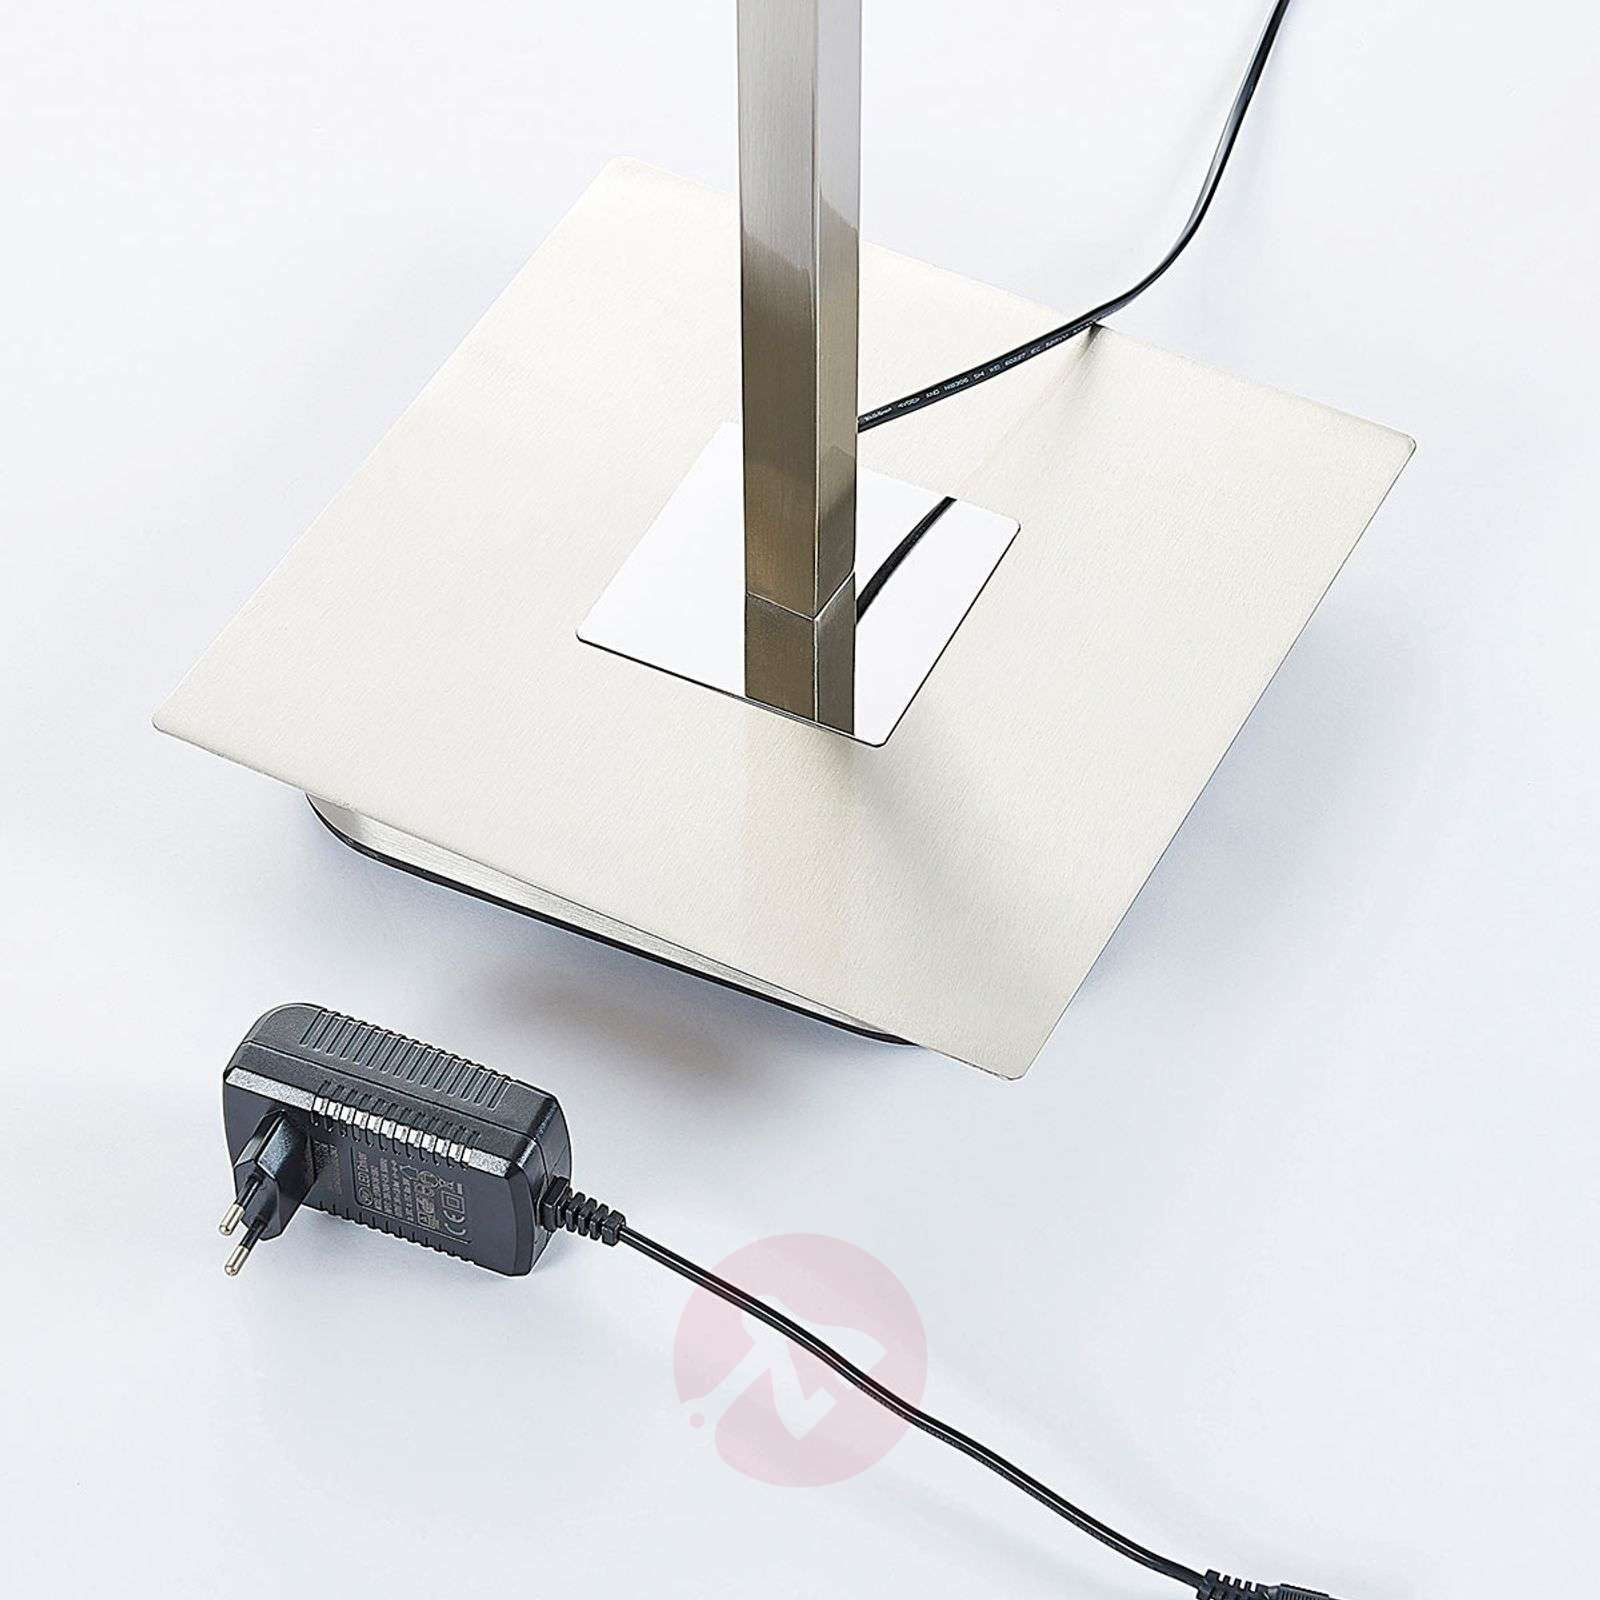 Dimmable LED uplighter Raon with reading lamp-9621656-02